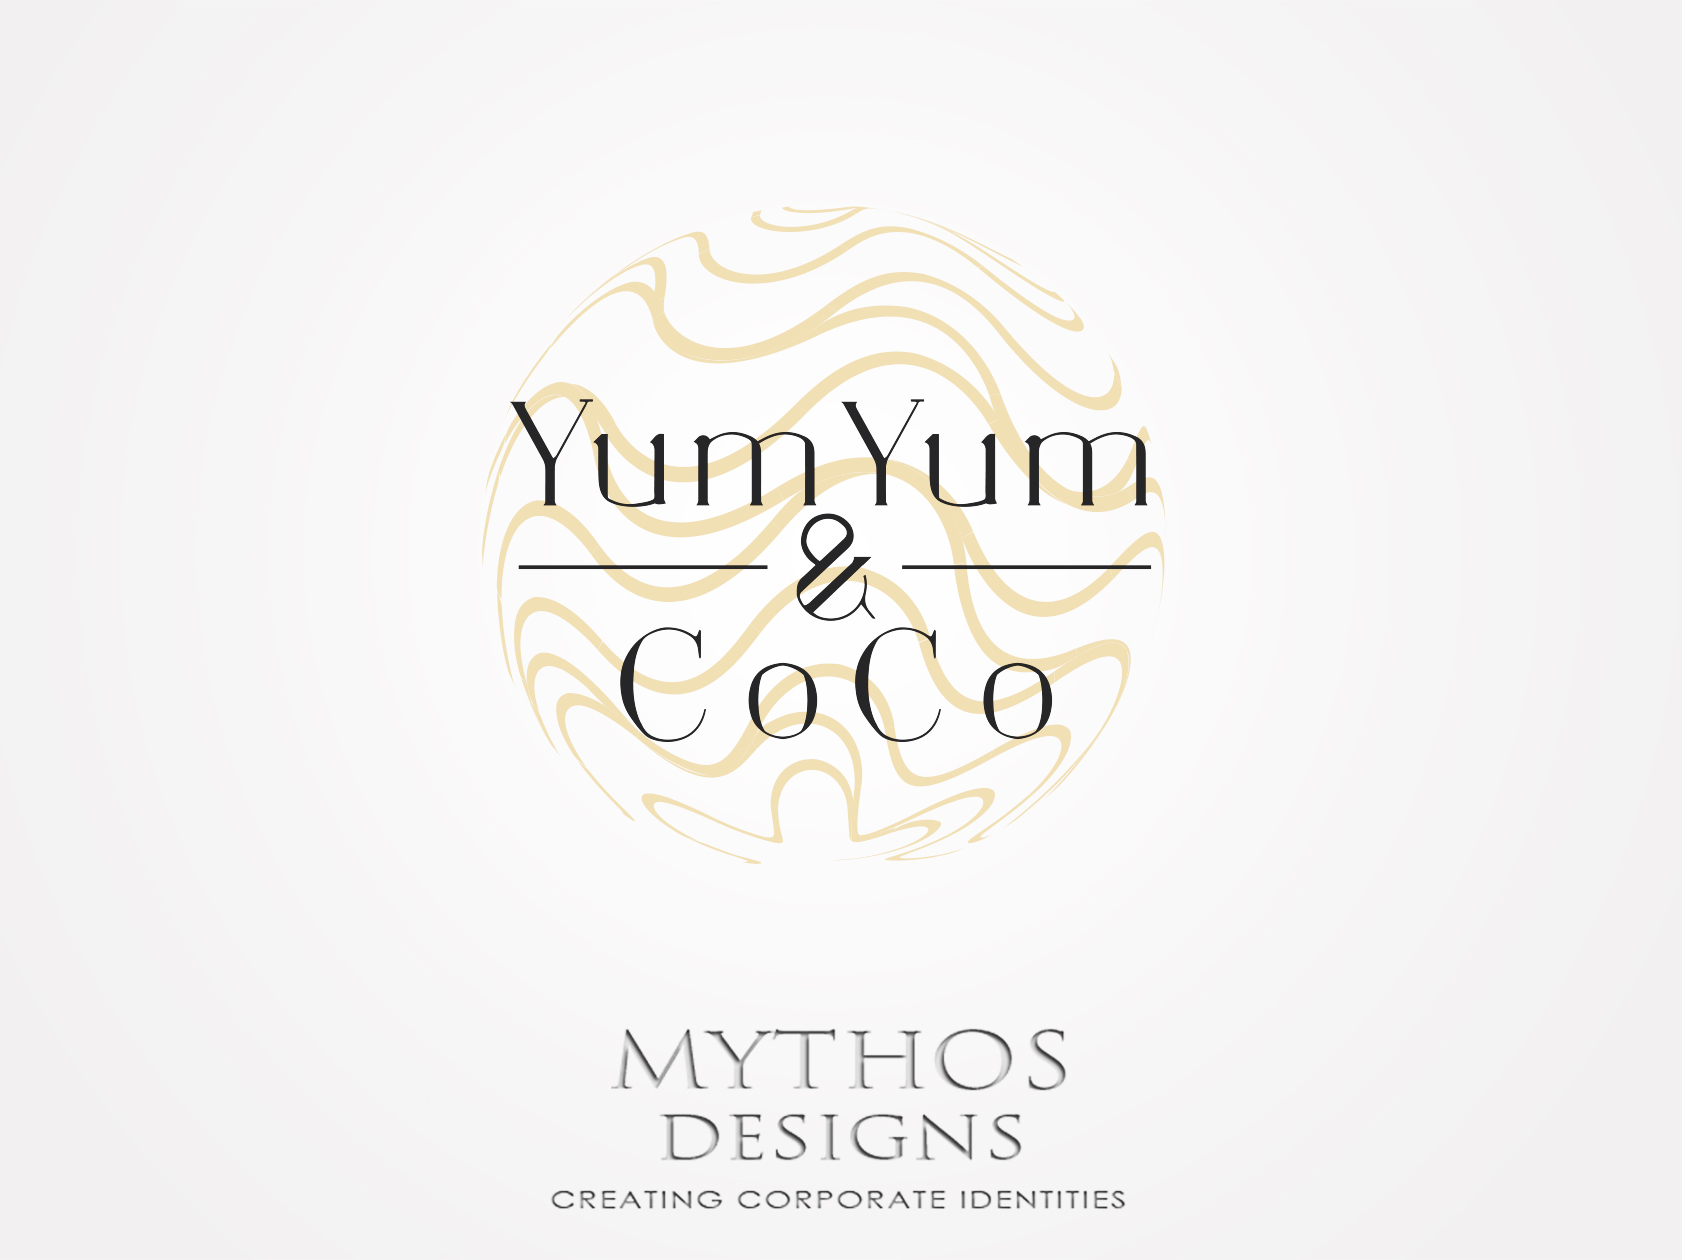 Logo Design by Mythos Designs - Entry No. 12 in the Logo Design Contest Logo Design for YumYum & CoCo.